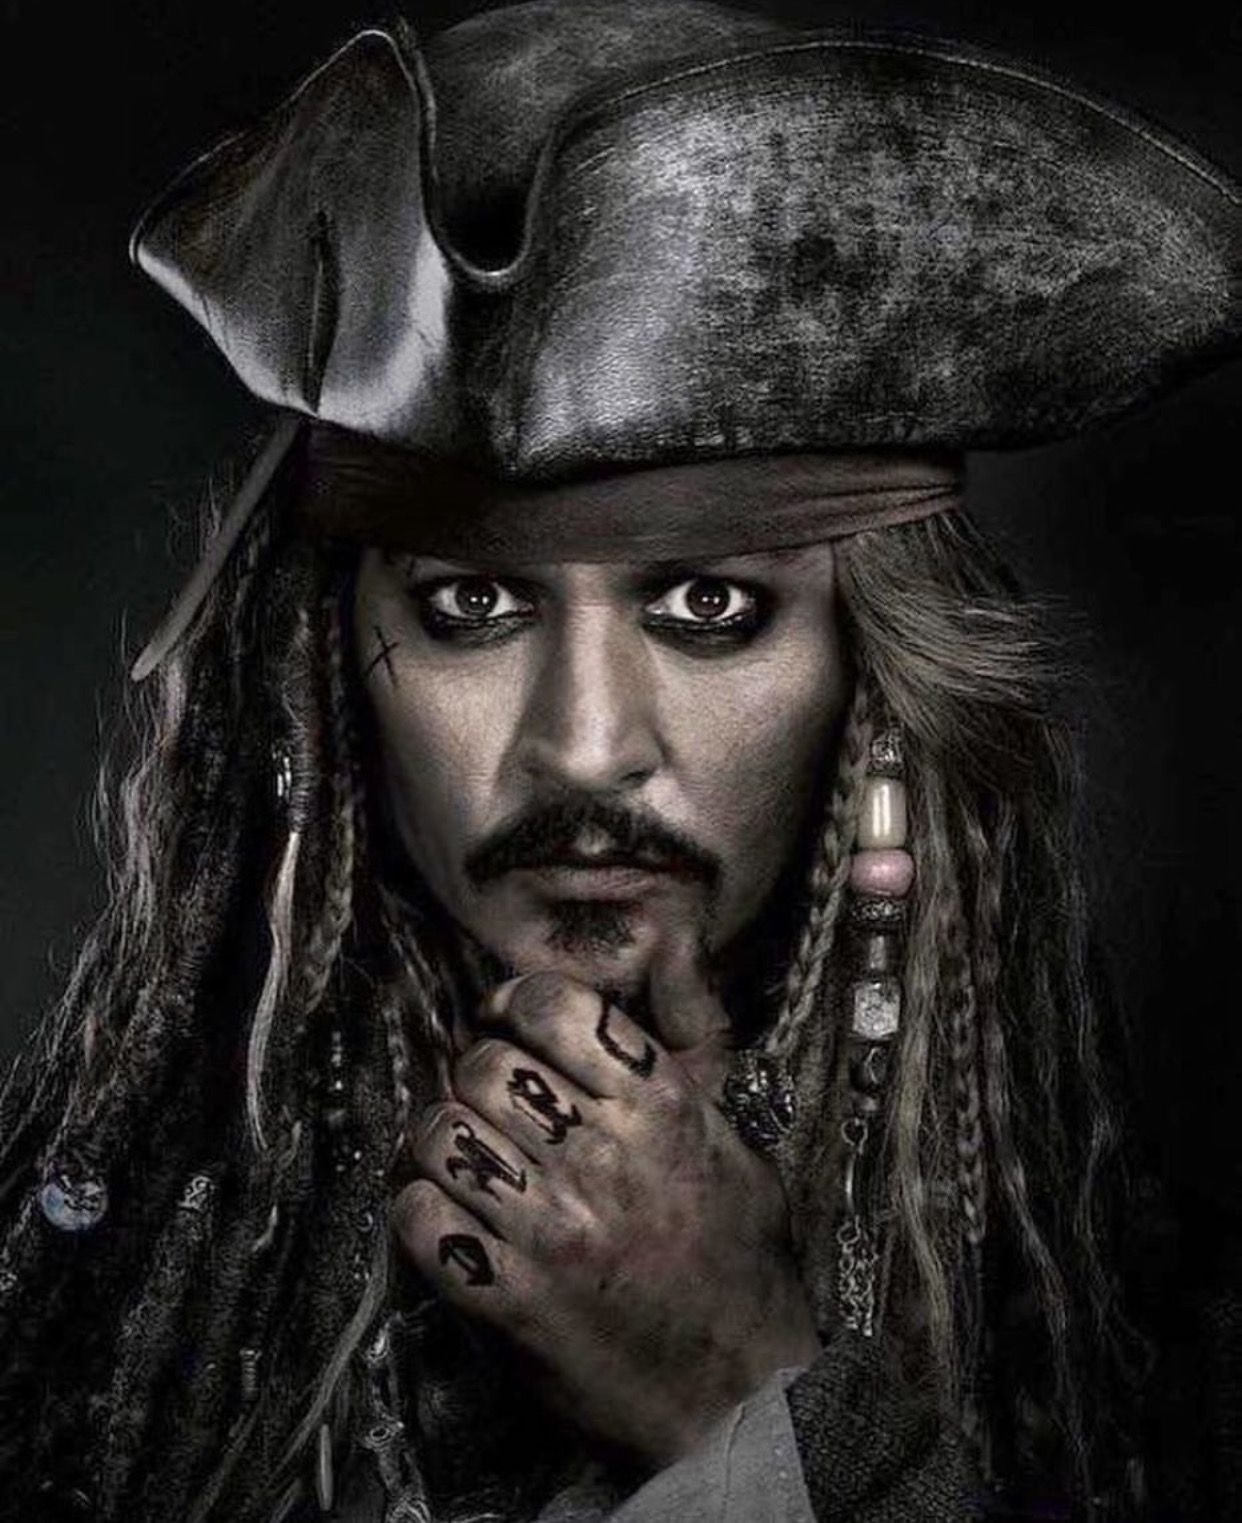 Pirates Of The Caribbean Wallpaper Hd: Captain Jack Sparrow (pirates Of